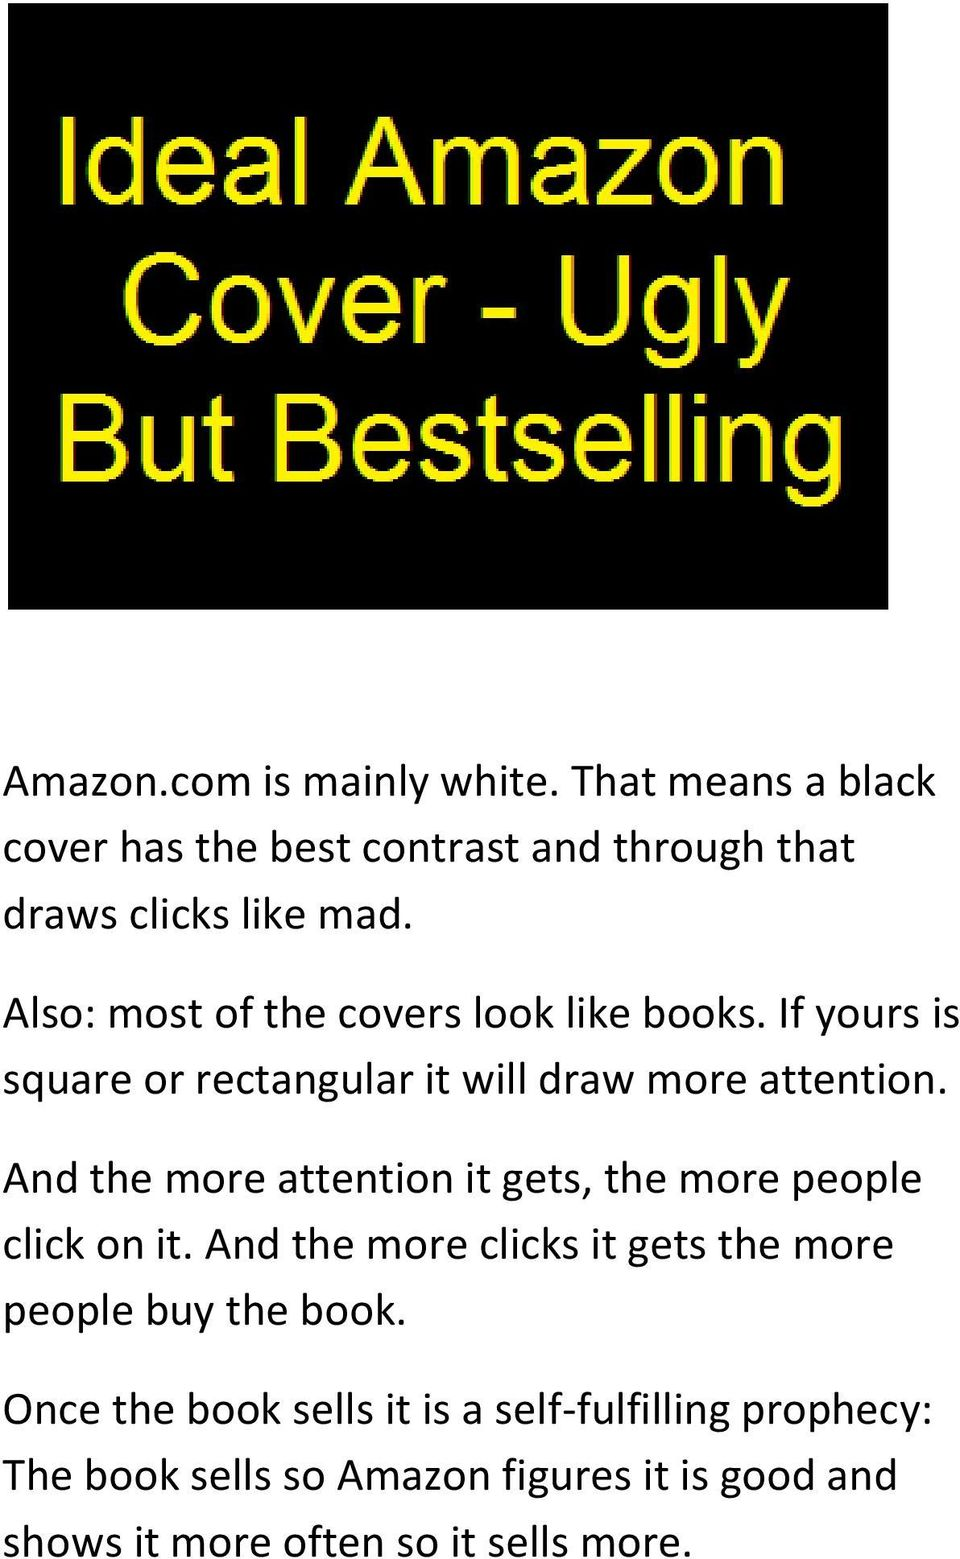 And the more attention it gets, the more people click on it. And the more clicks it gets the more people buy the book.